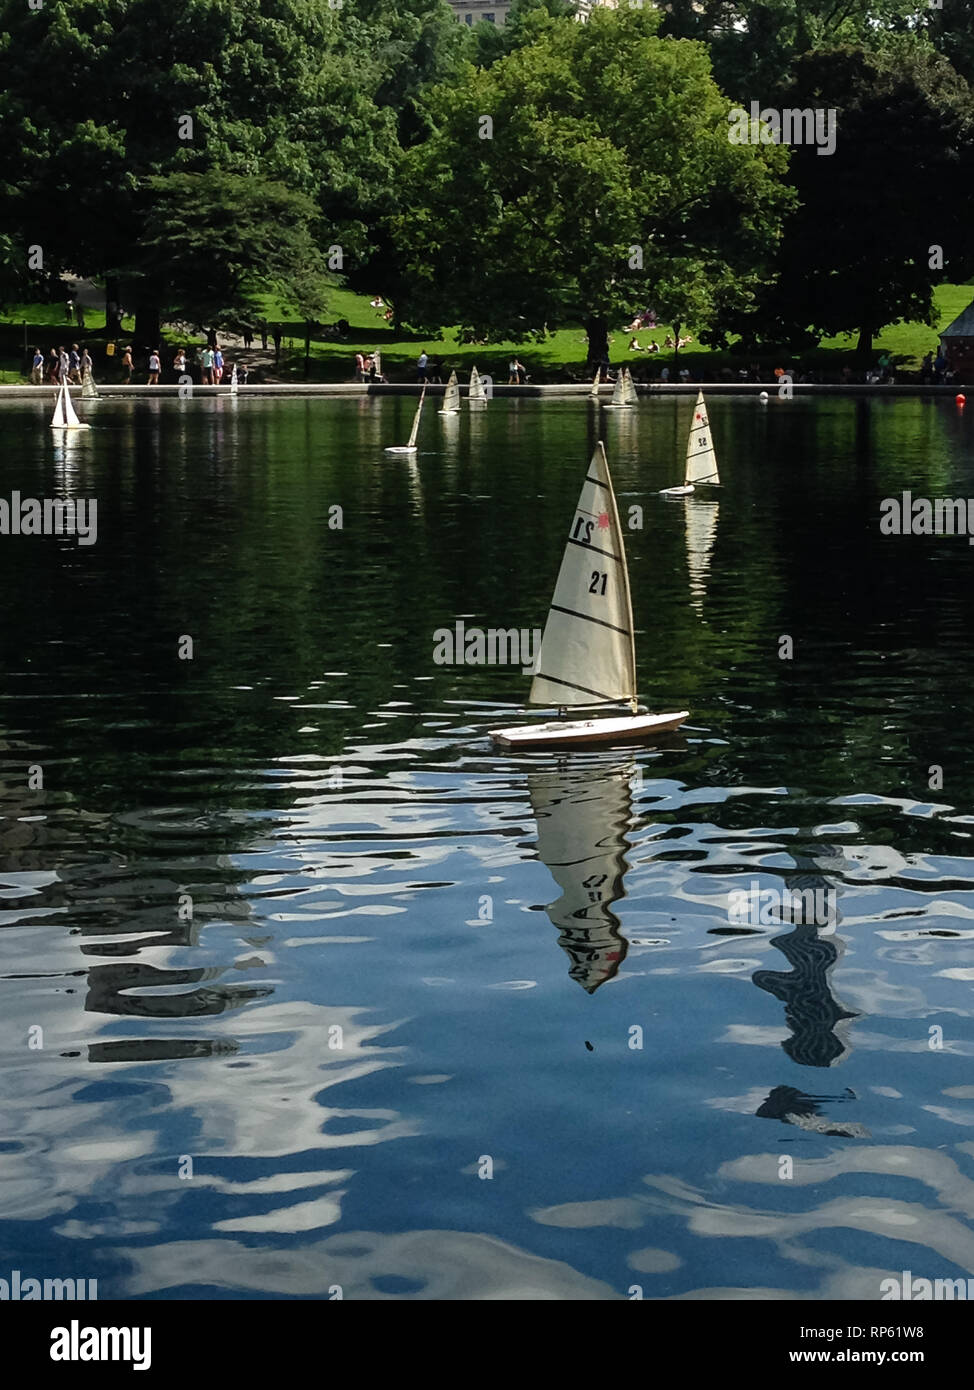 Central Park Model Boat Sailing High Resolution Stock Photography And Images Alamy